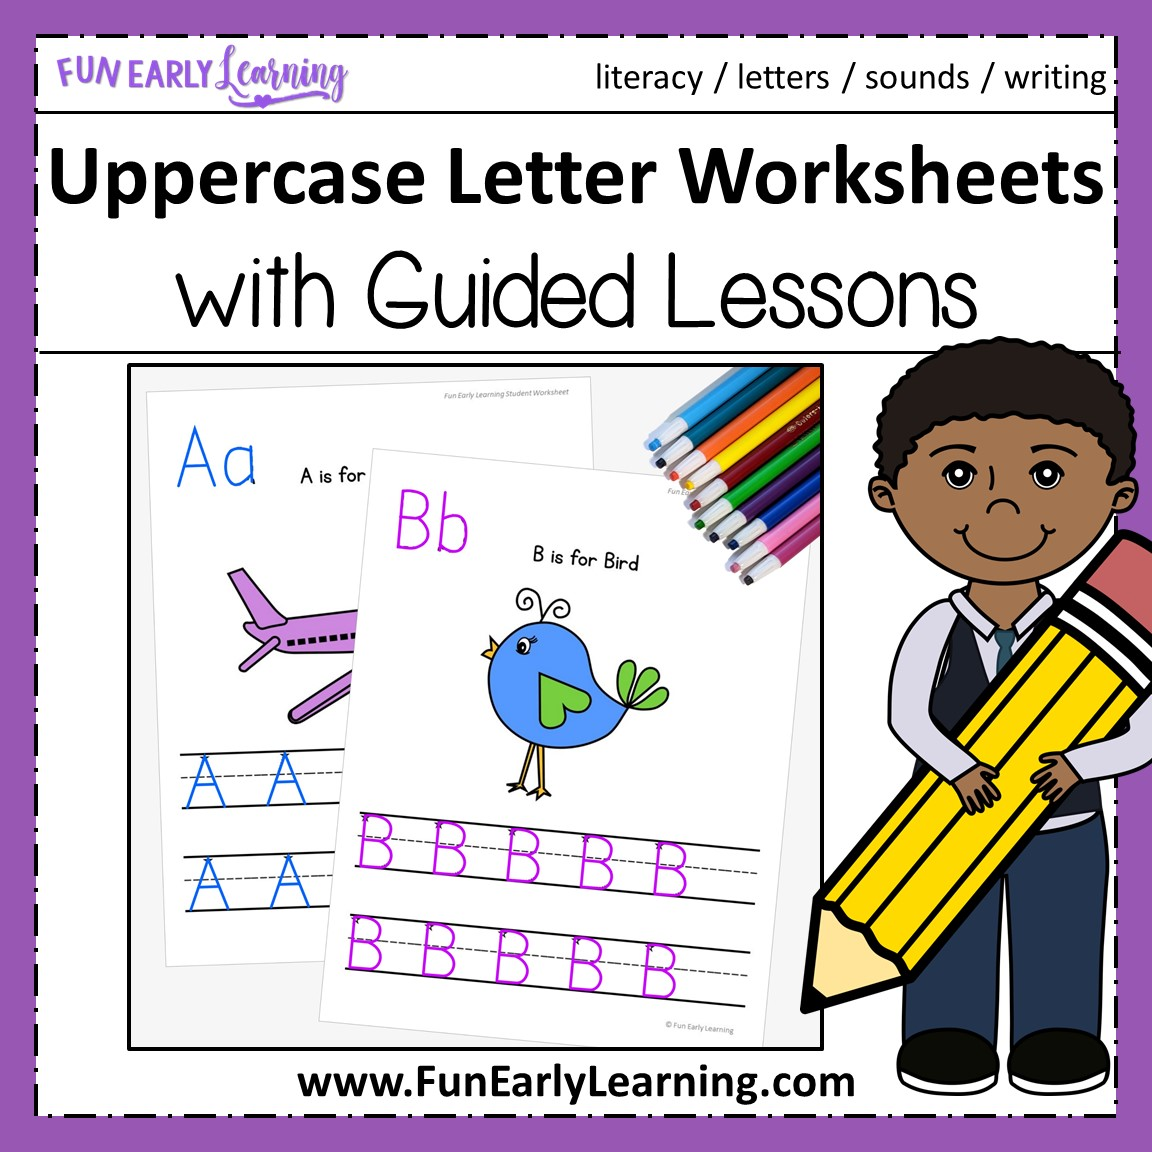 Uppercase Letter Worksheets With Guided Lessons For Prek